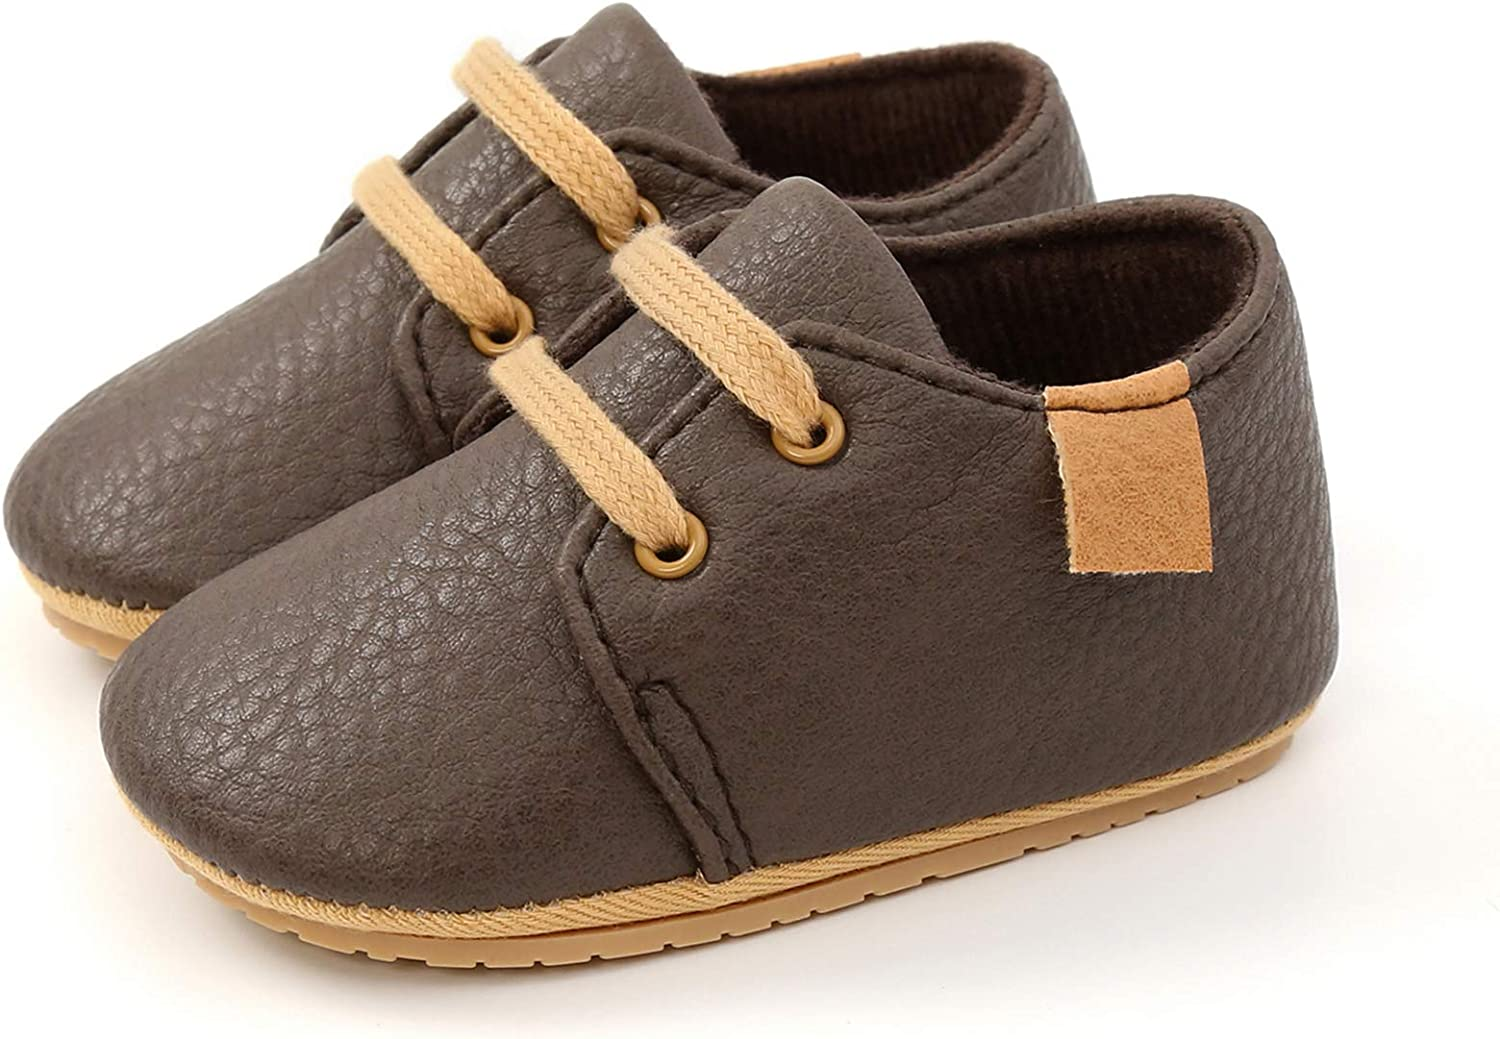 WILLFUN Baby Reservation Boys Girls PU Leather Max 75% OFF Rubber Lace-u Soft Shoes Sole